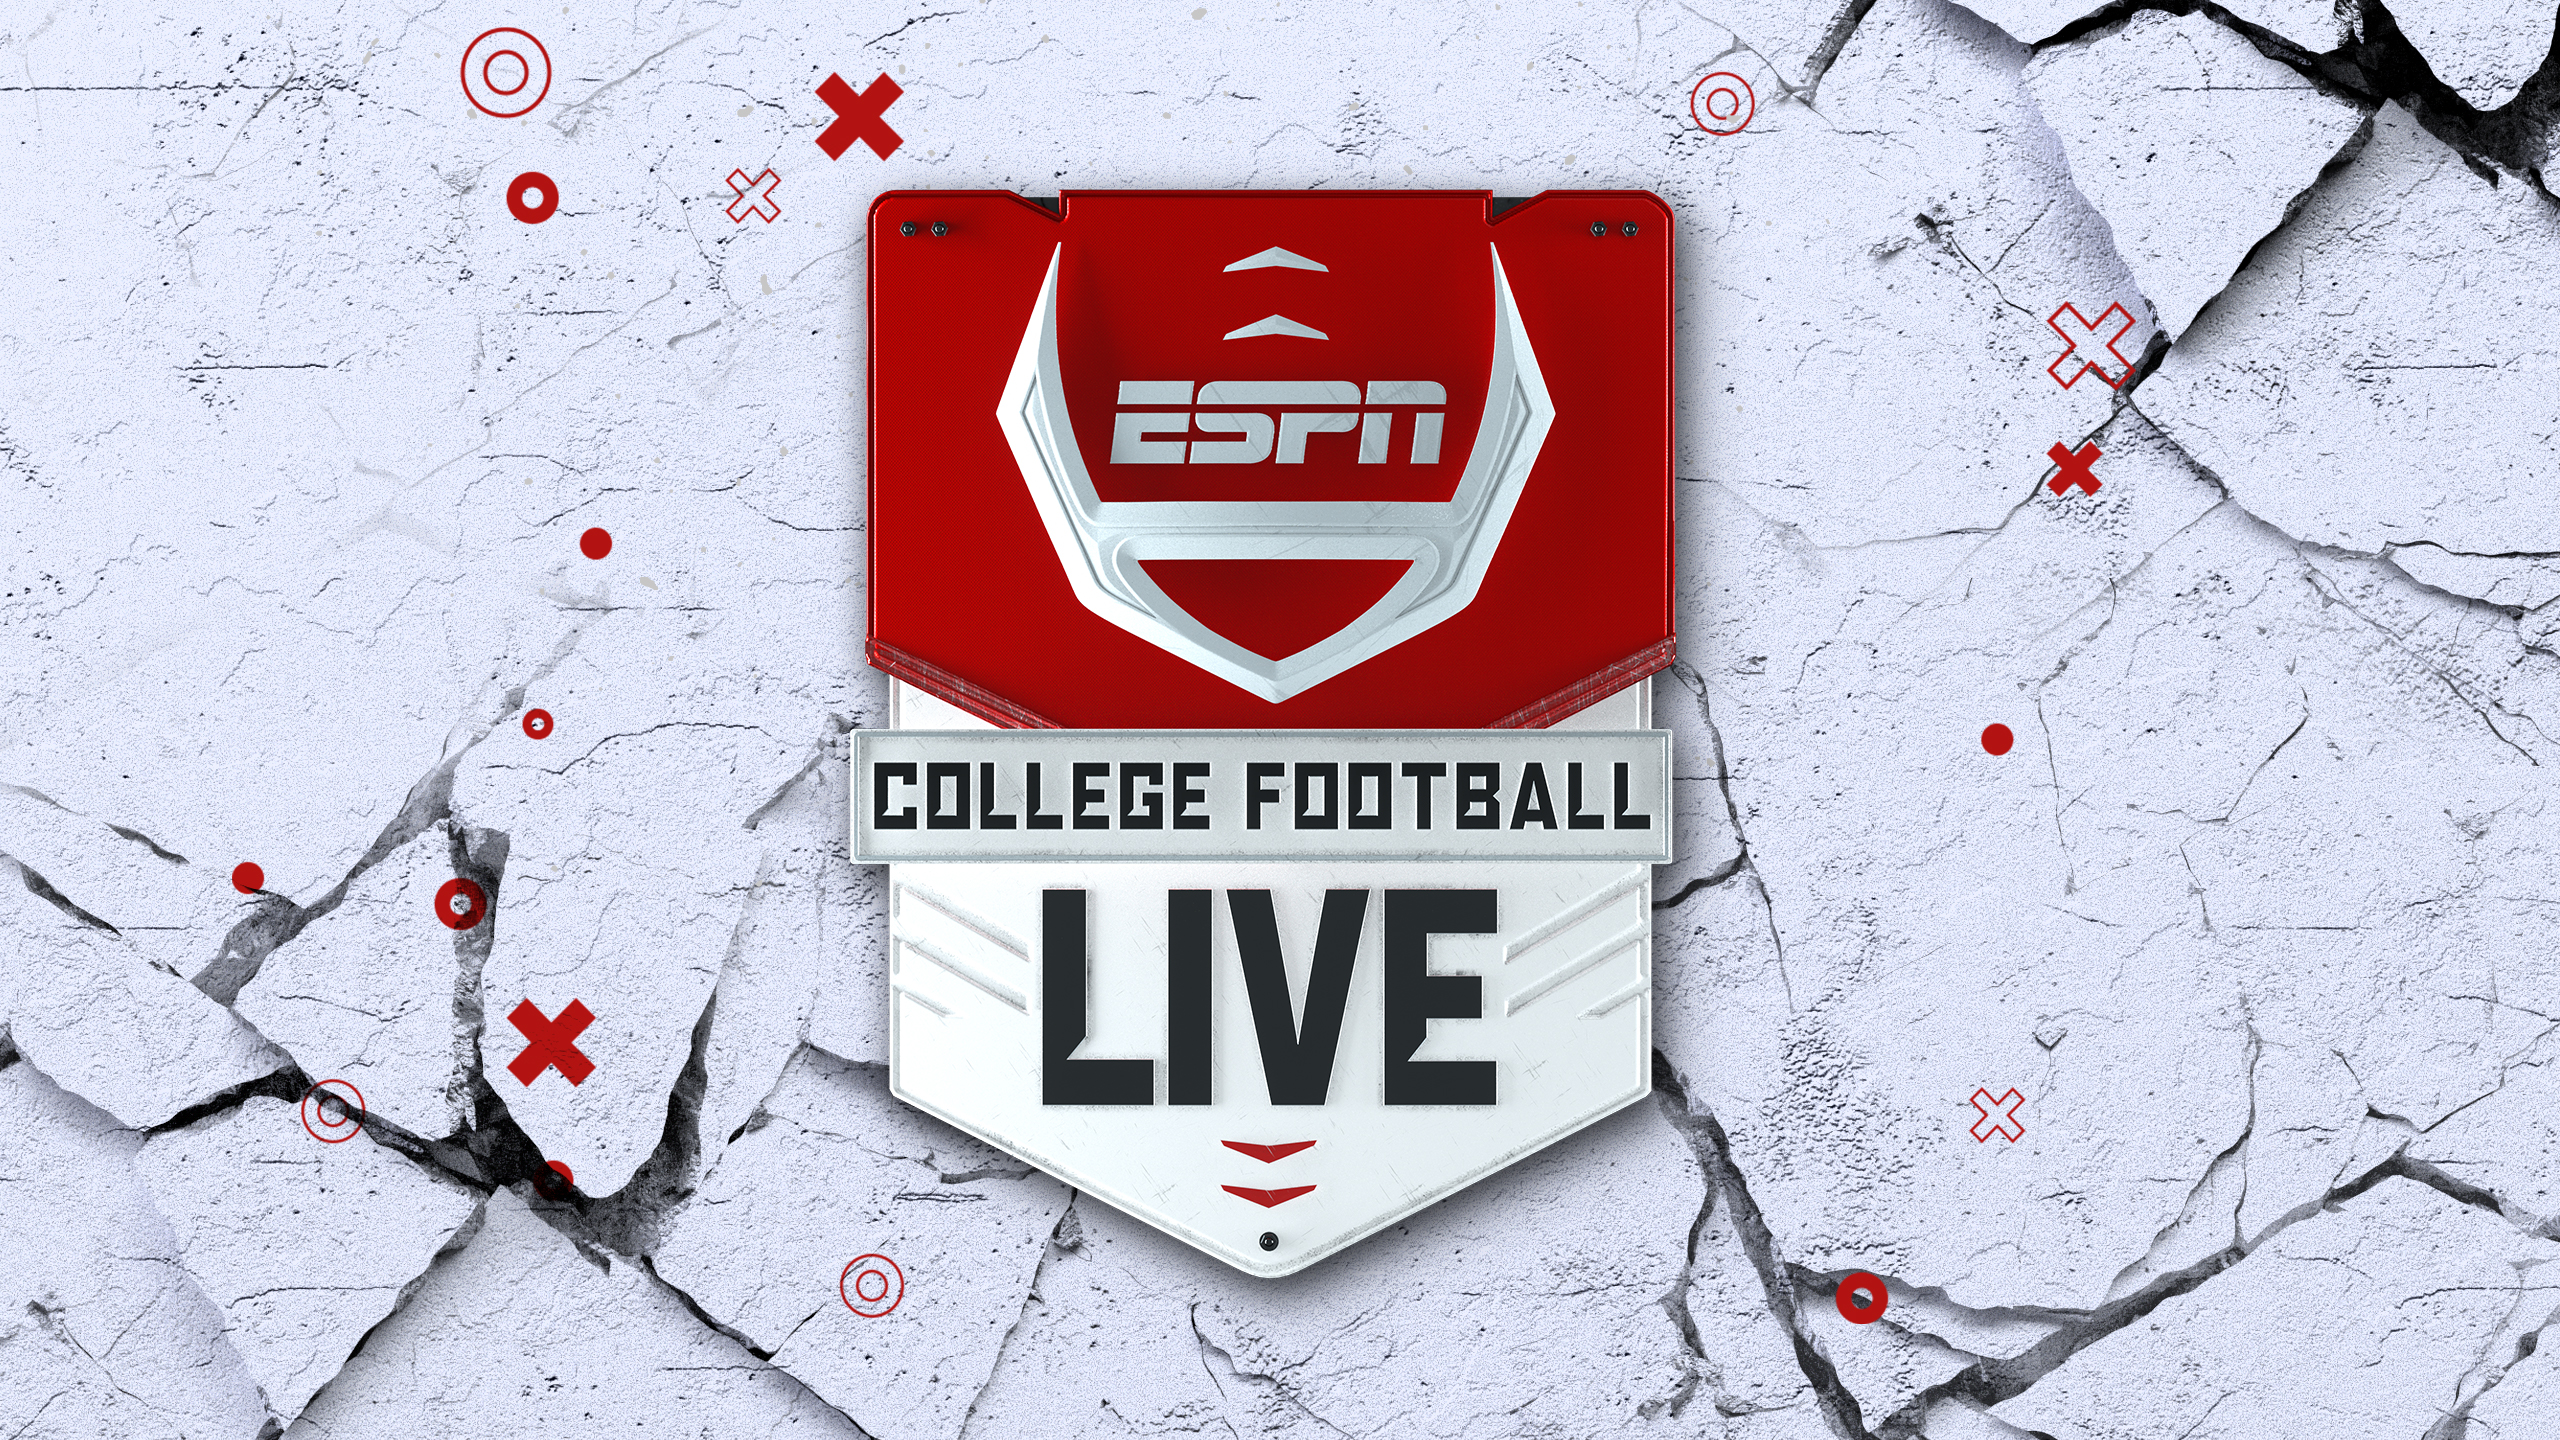 Thu, 12/6 - College Football Live Presented by Dr Pepper